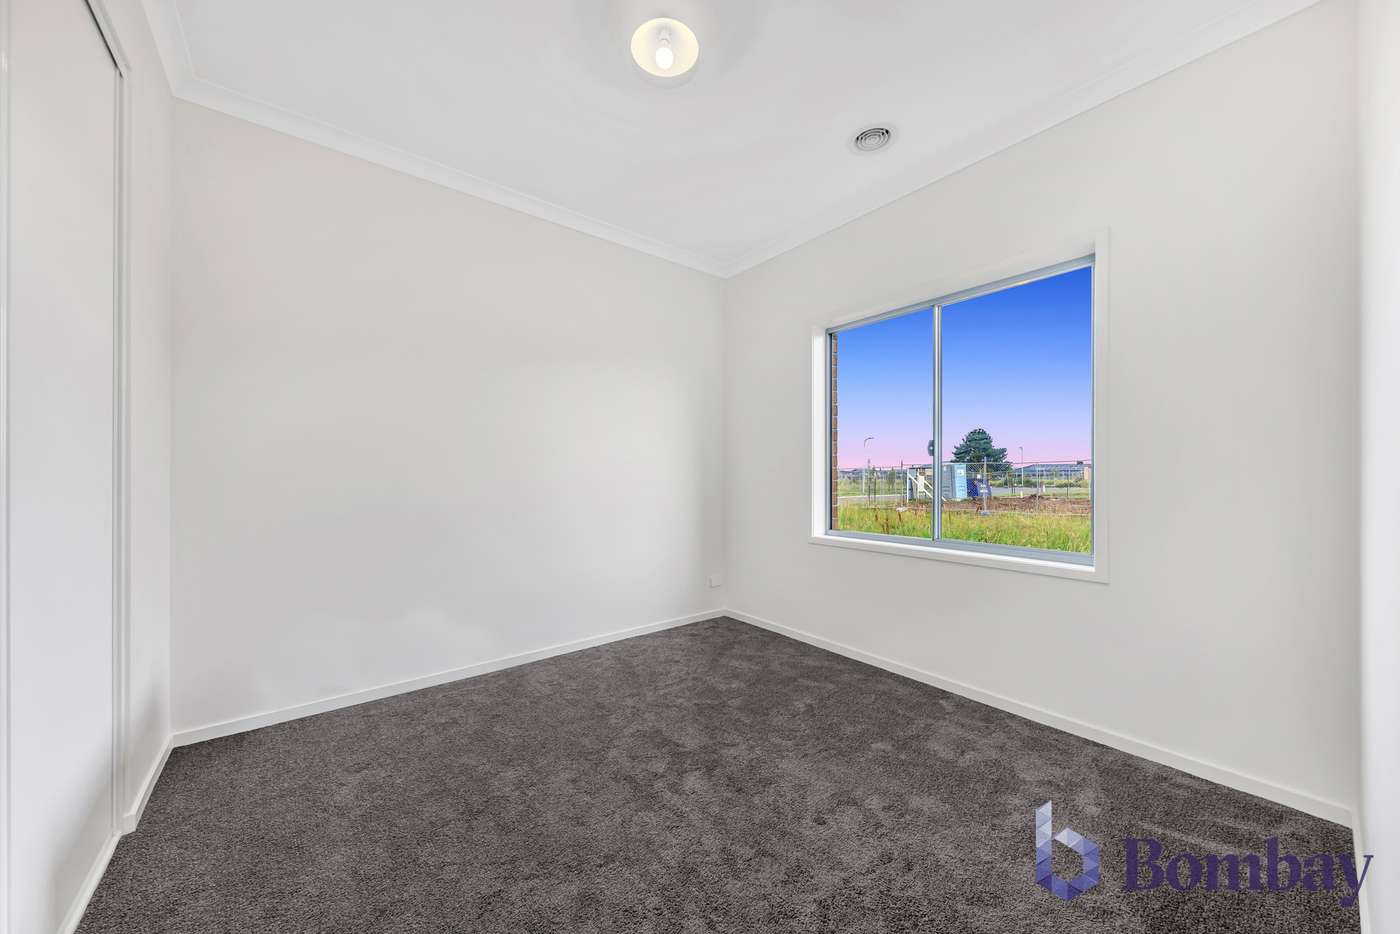 Seventh view of Homely house listing, 30 Bookham Circuit, Kalkallo VIC 3064